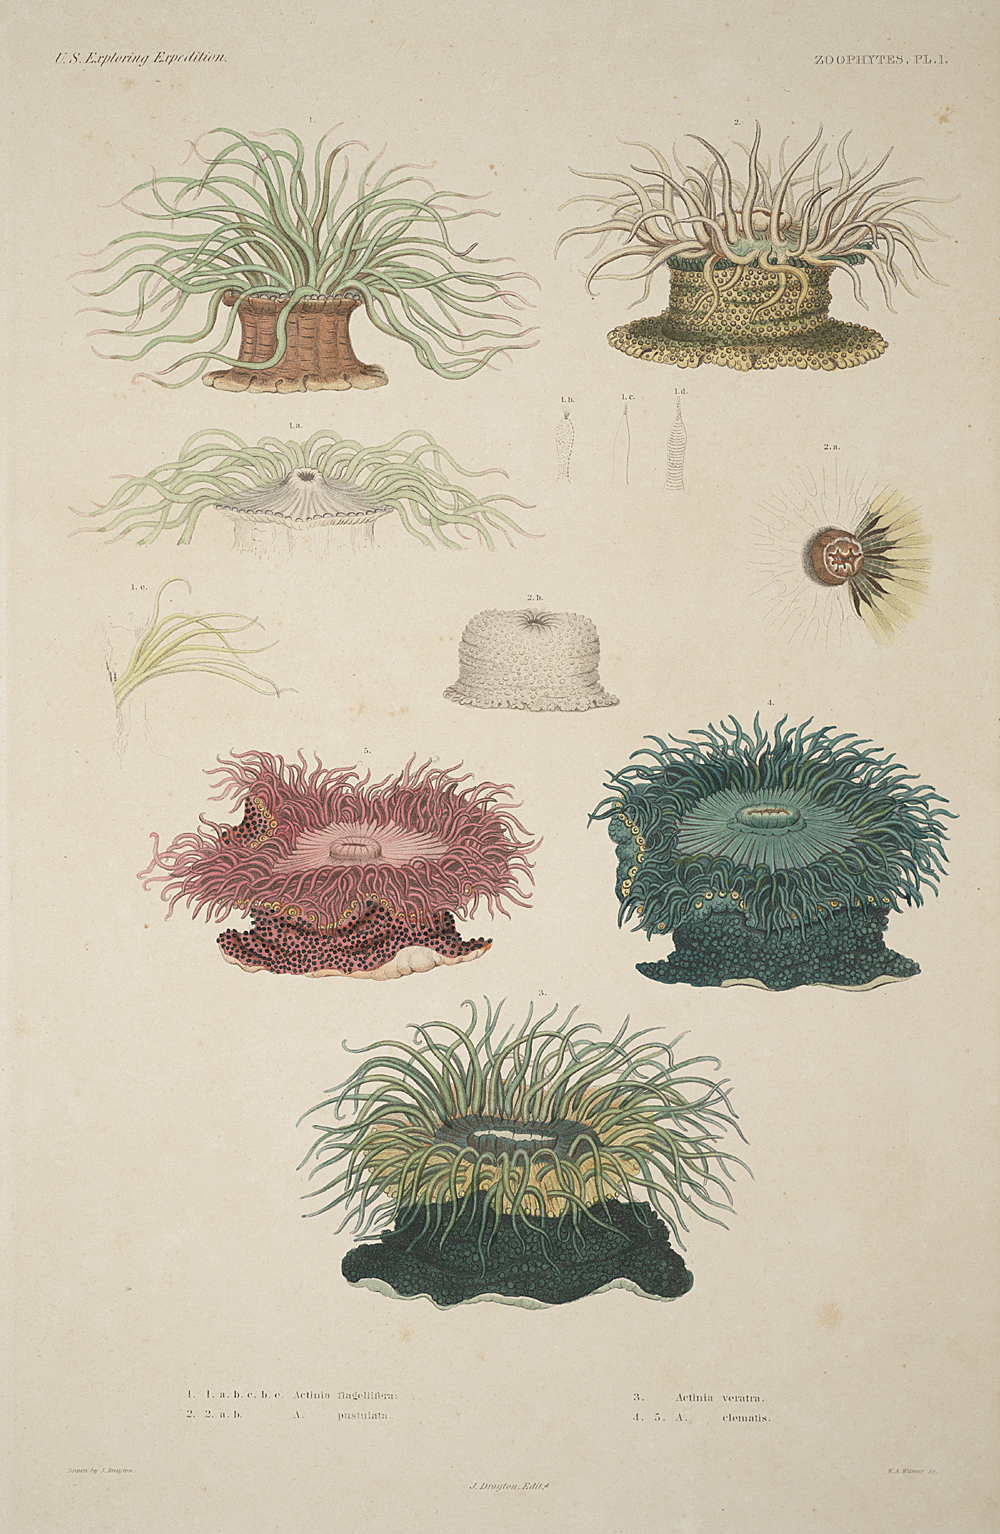 Zoophytes, Plate 1,  Image number:sil19-09-019b